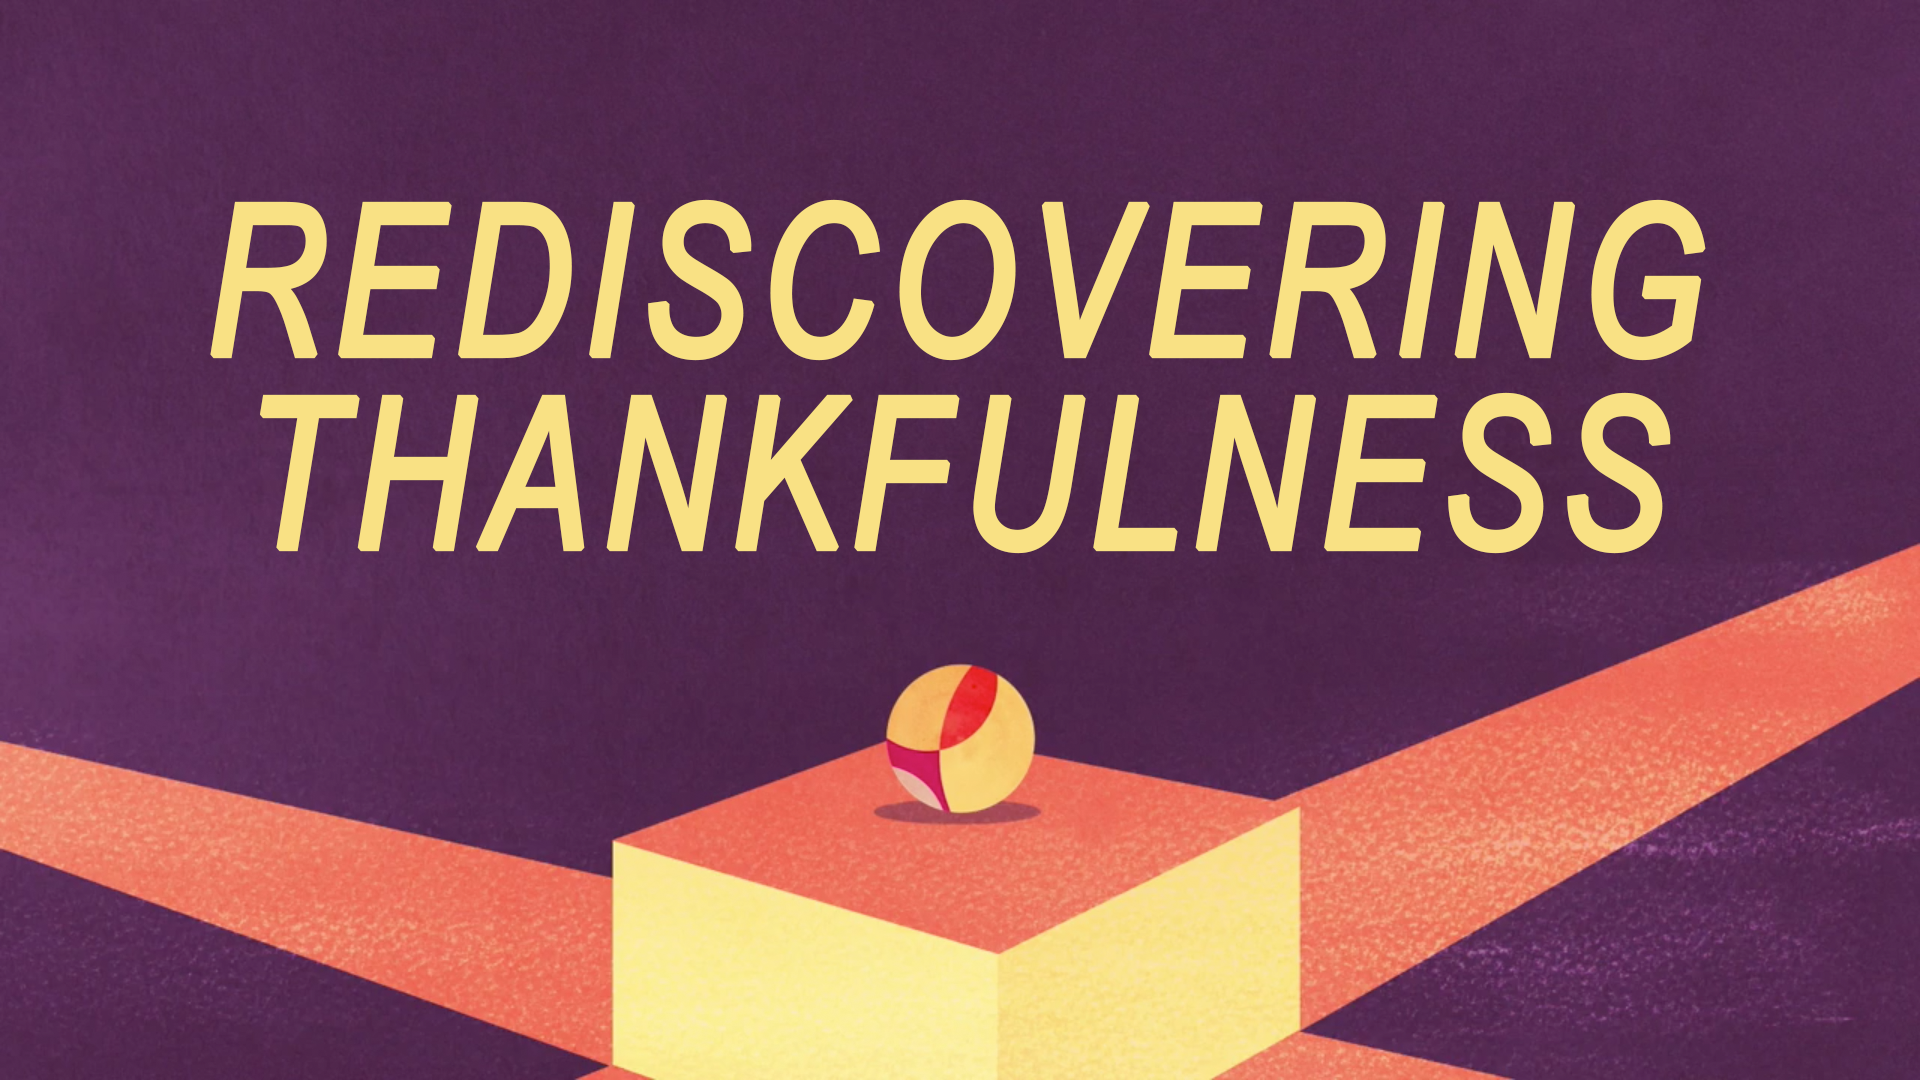 Rediscovering Thankfulness